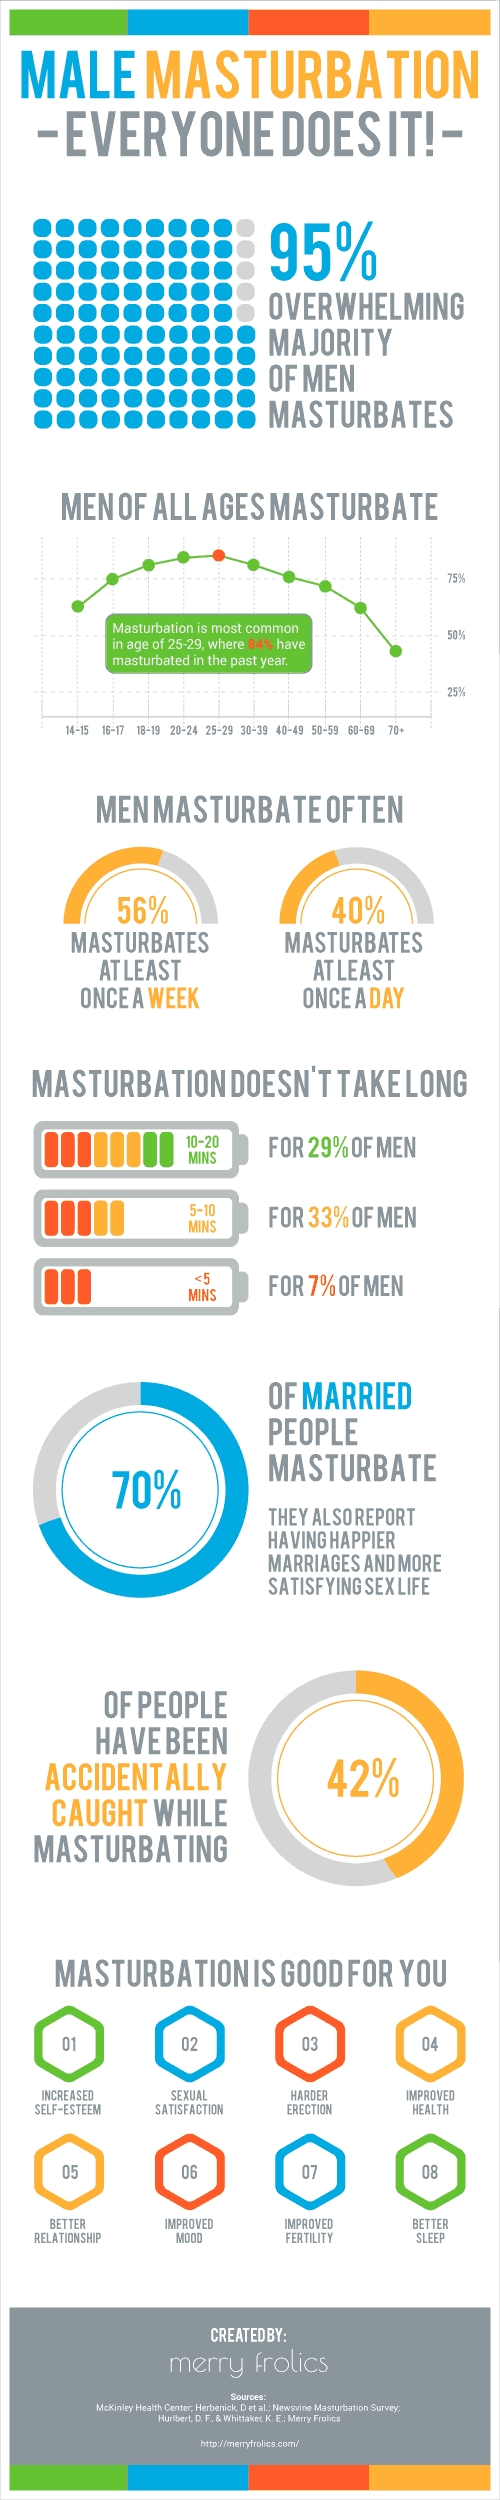 male masturbation by numbers infographic